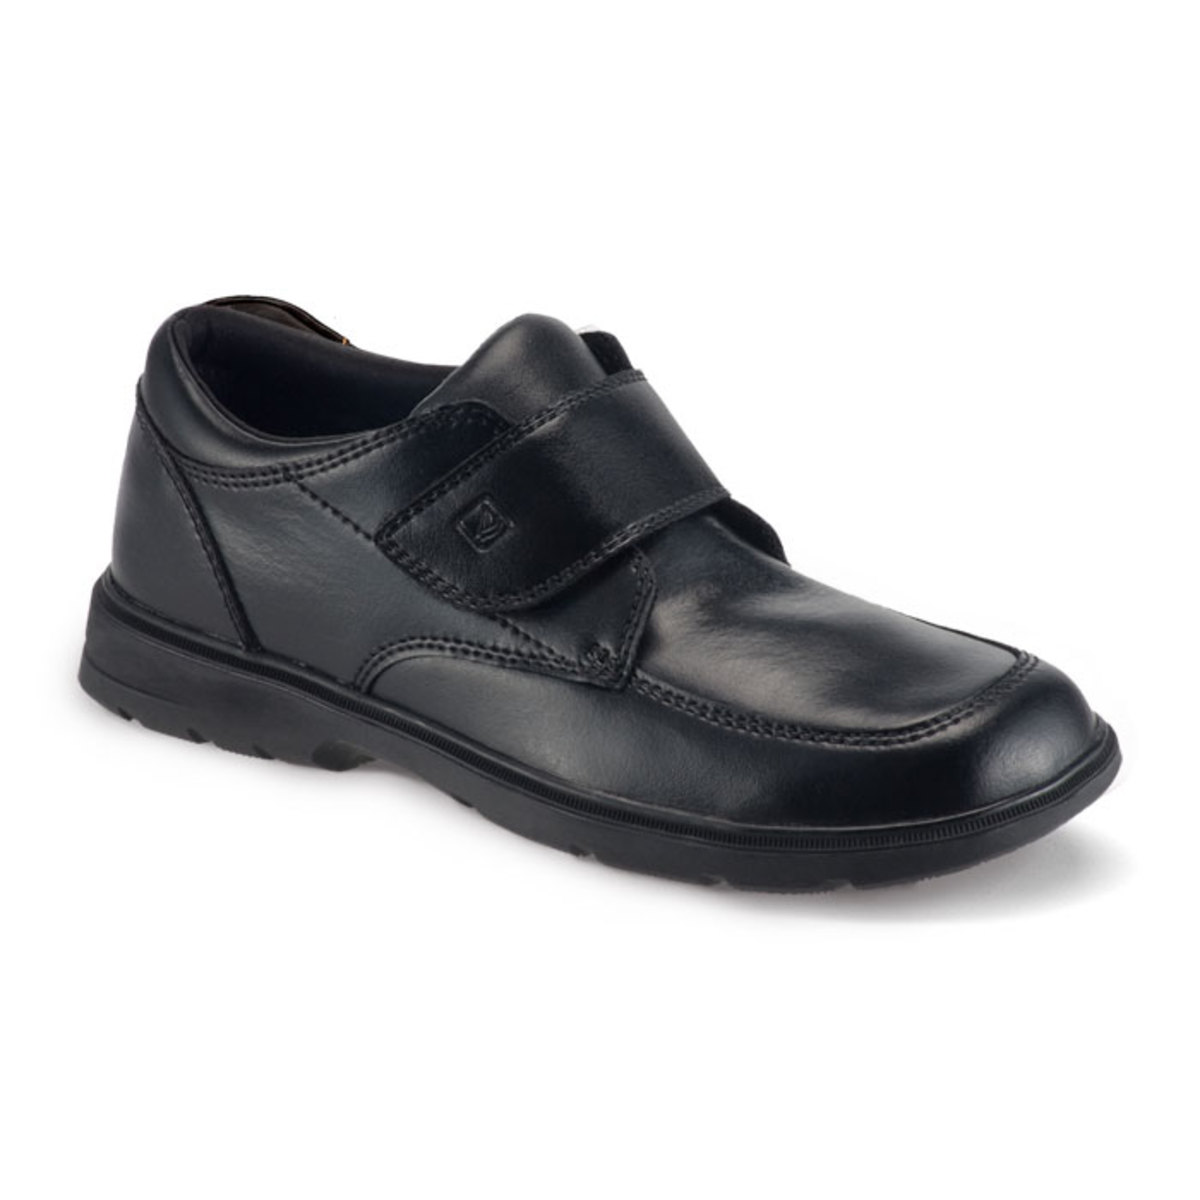 Stride Rite, uniform shoes